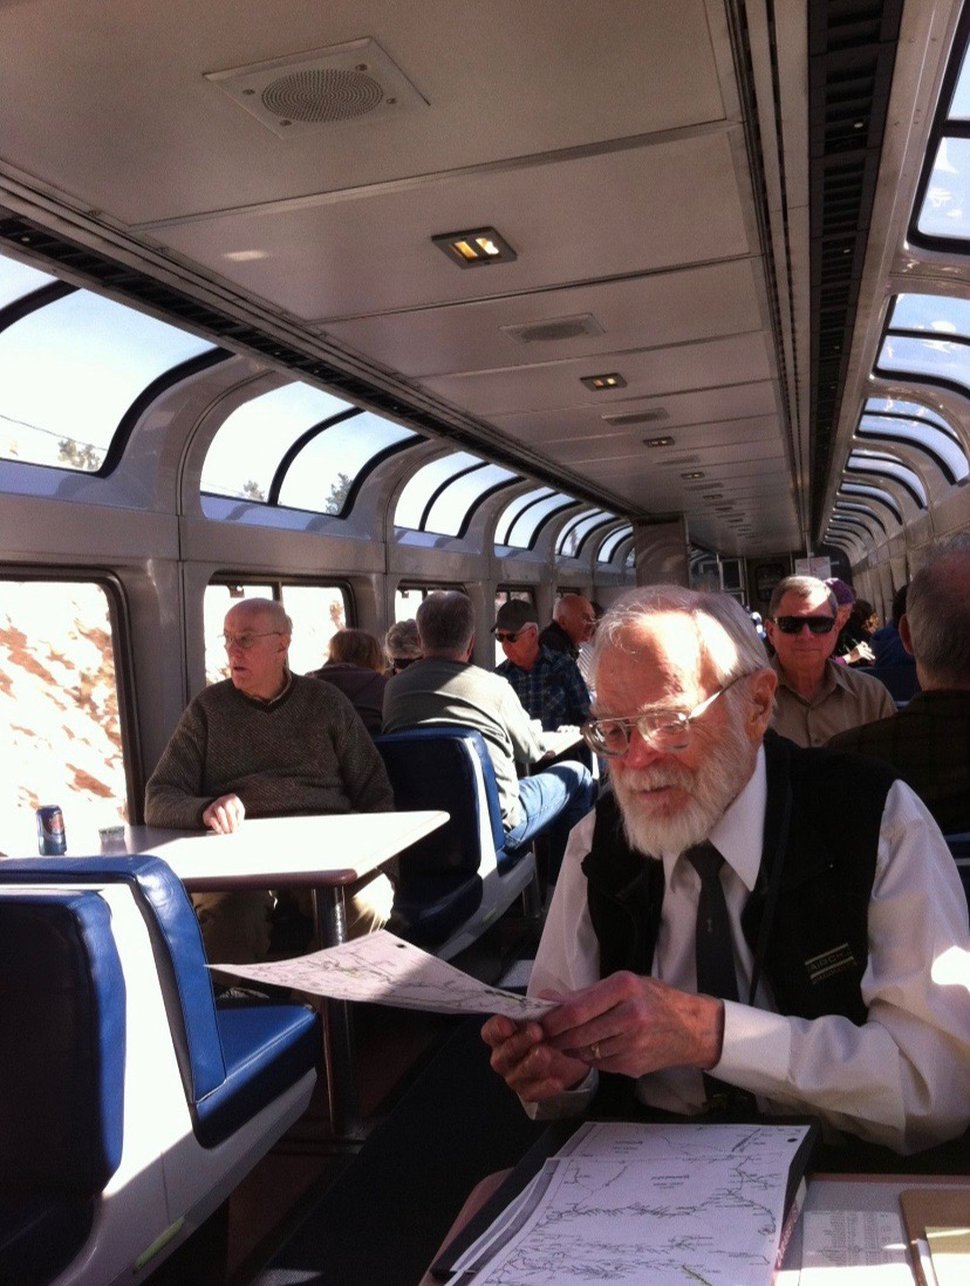 (Photo courtesy of Jackie Morgan) John Degges sits aboard a train in this undated photo. Degges died July 29, 2020, in Salt Lake City after contracting COVID-19, his family says.